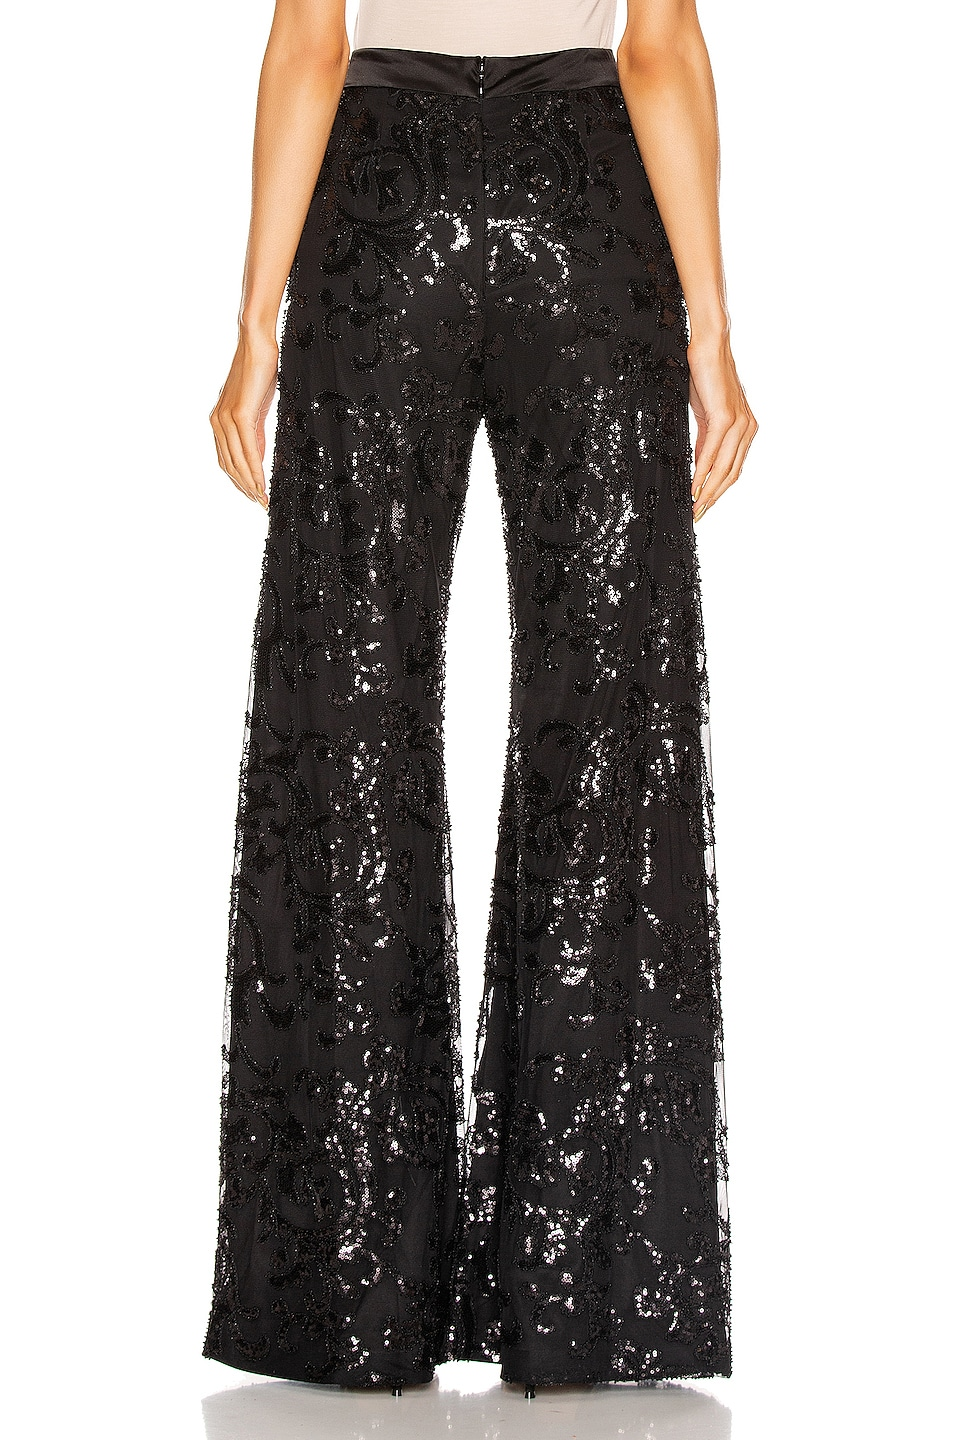 Image 3 of Alexis Silvestro Pant in Beaded Black